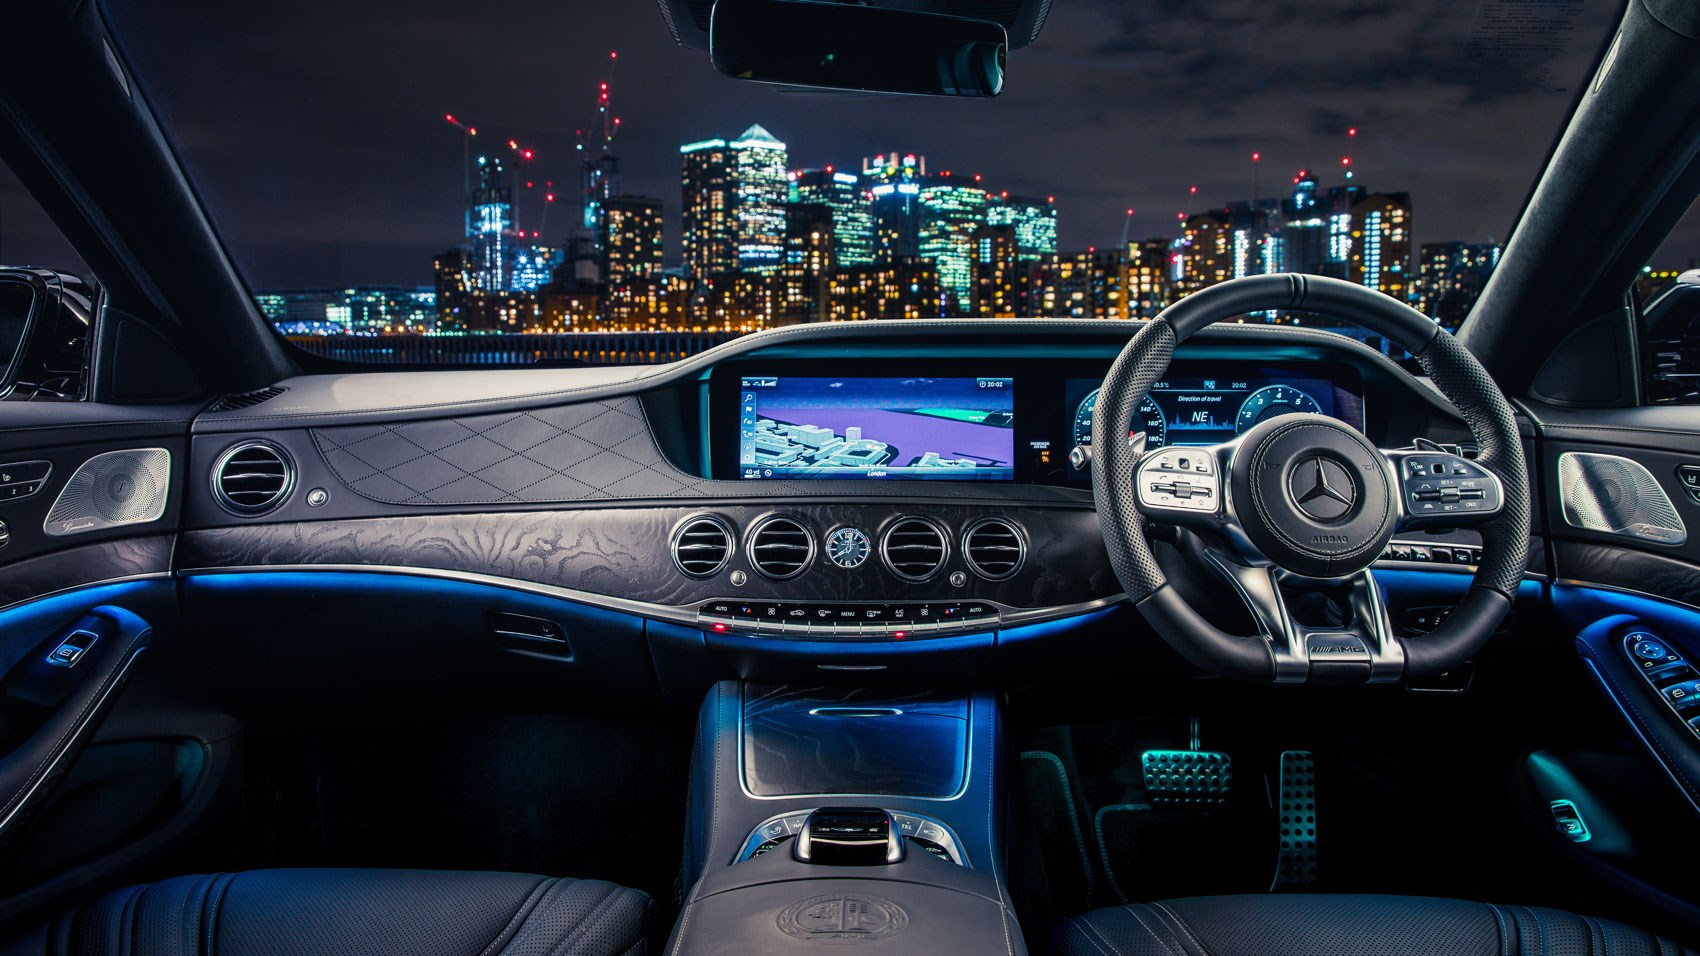 Mercedes Amg S63 L 2018 Review A Brute In A Sharp Suit